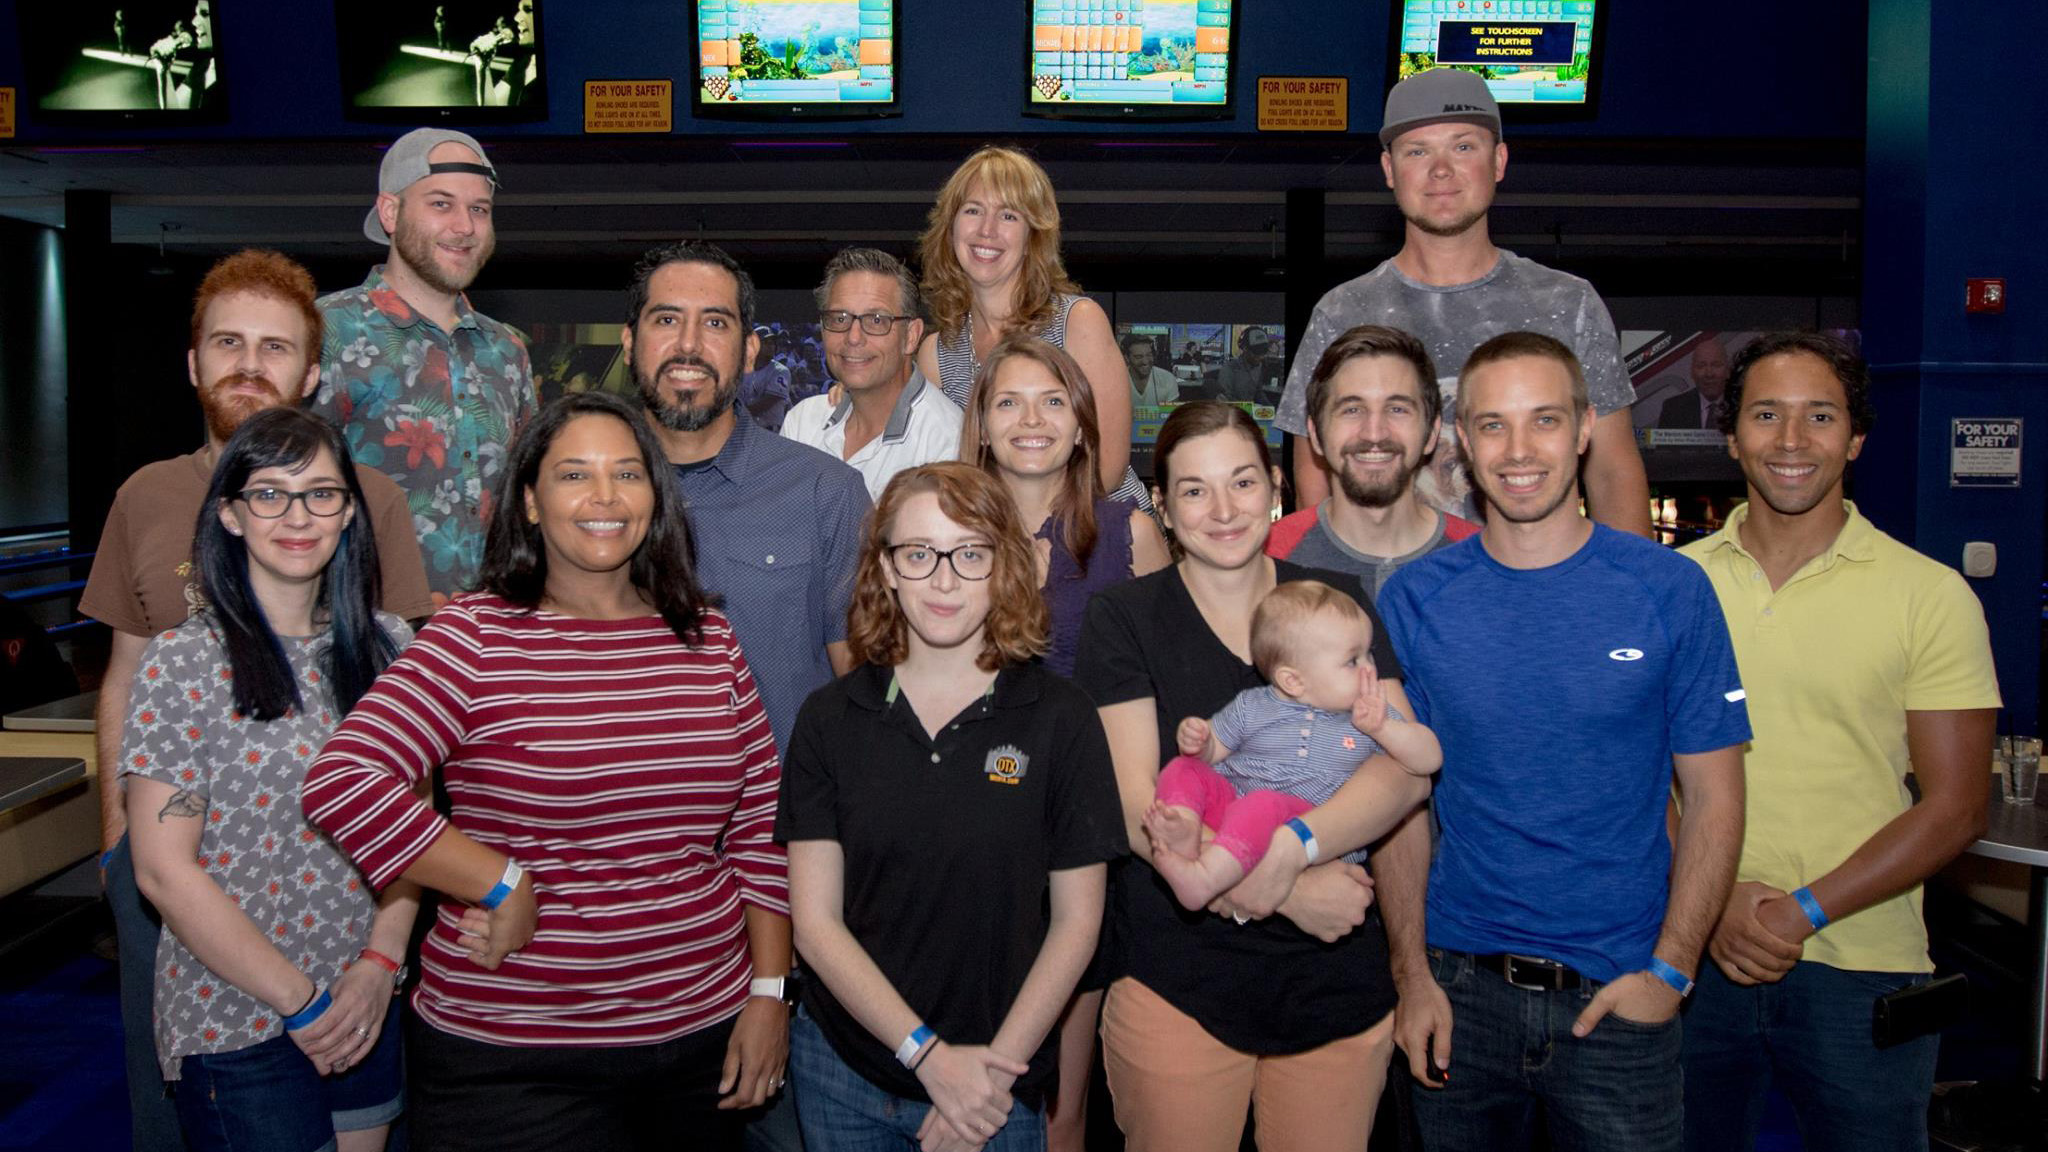 The DTX Media crew bonding at a bowling ally